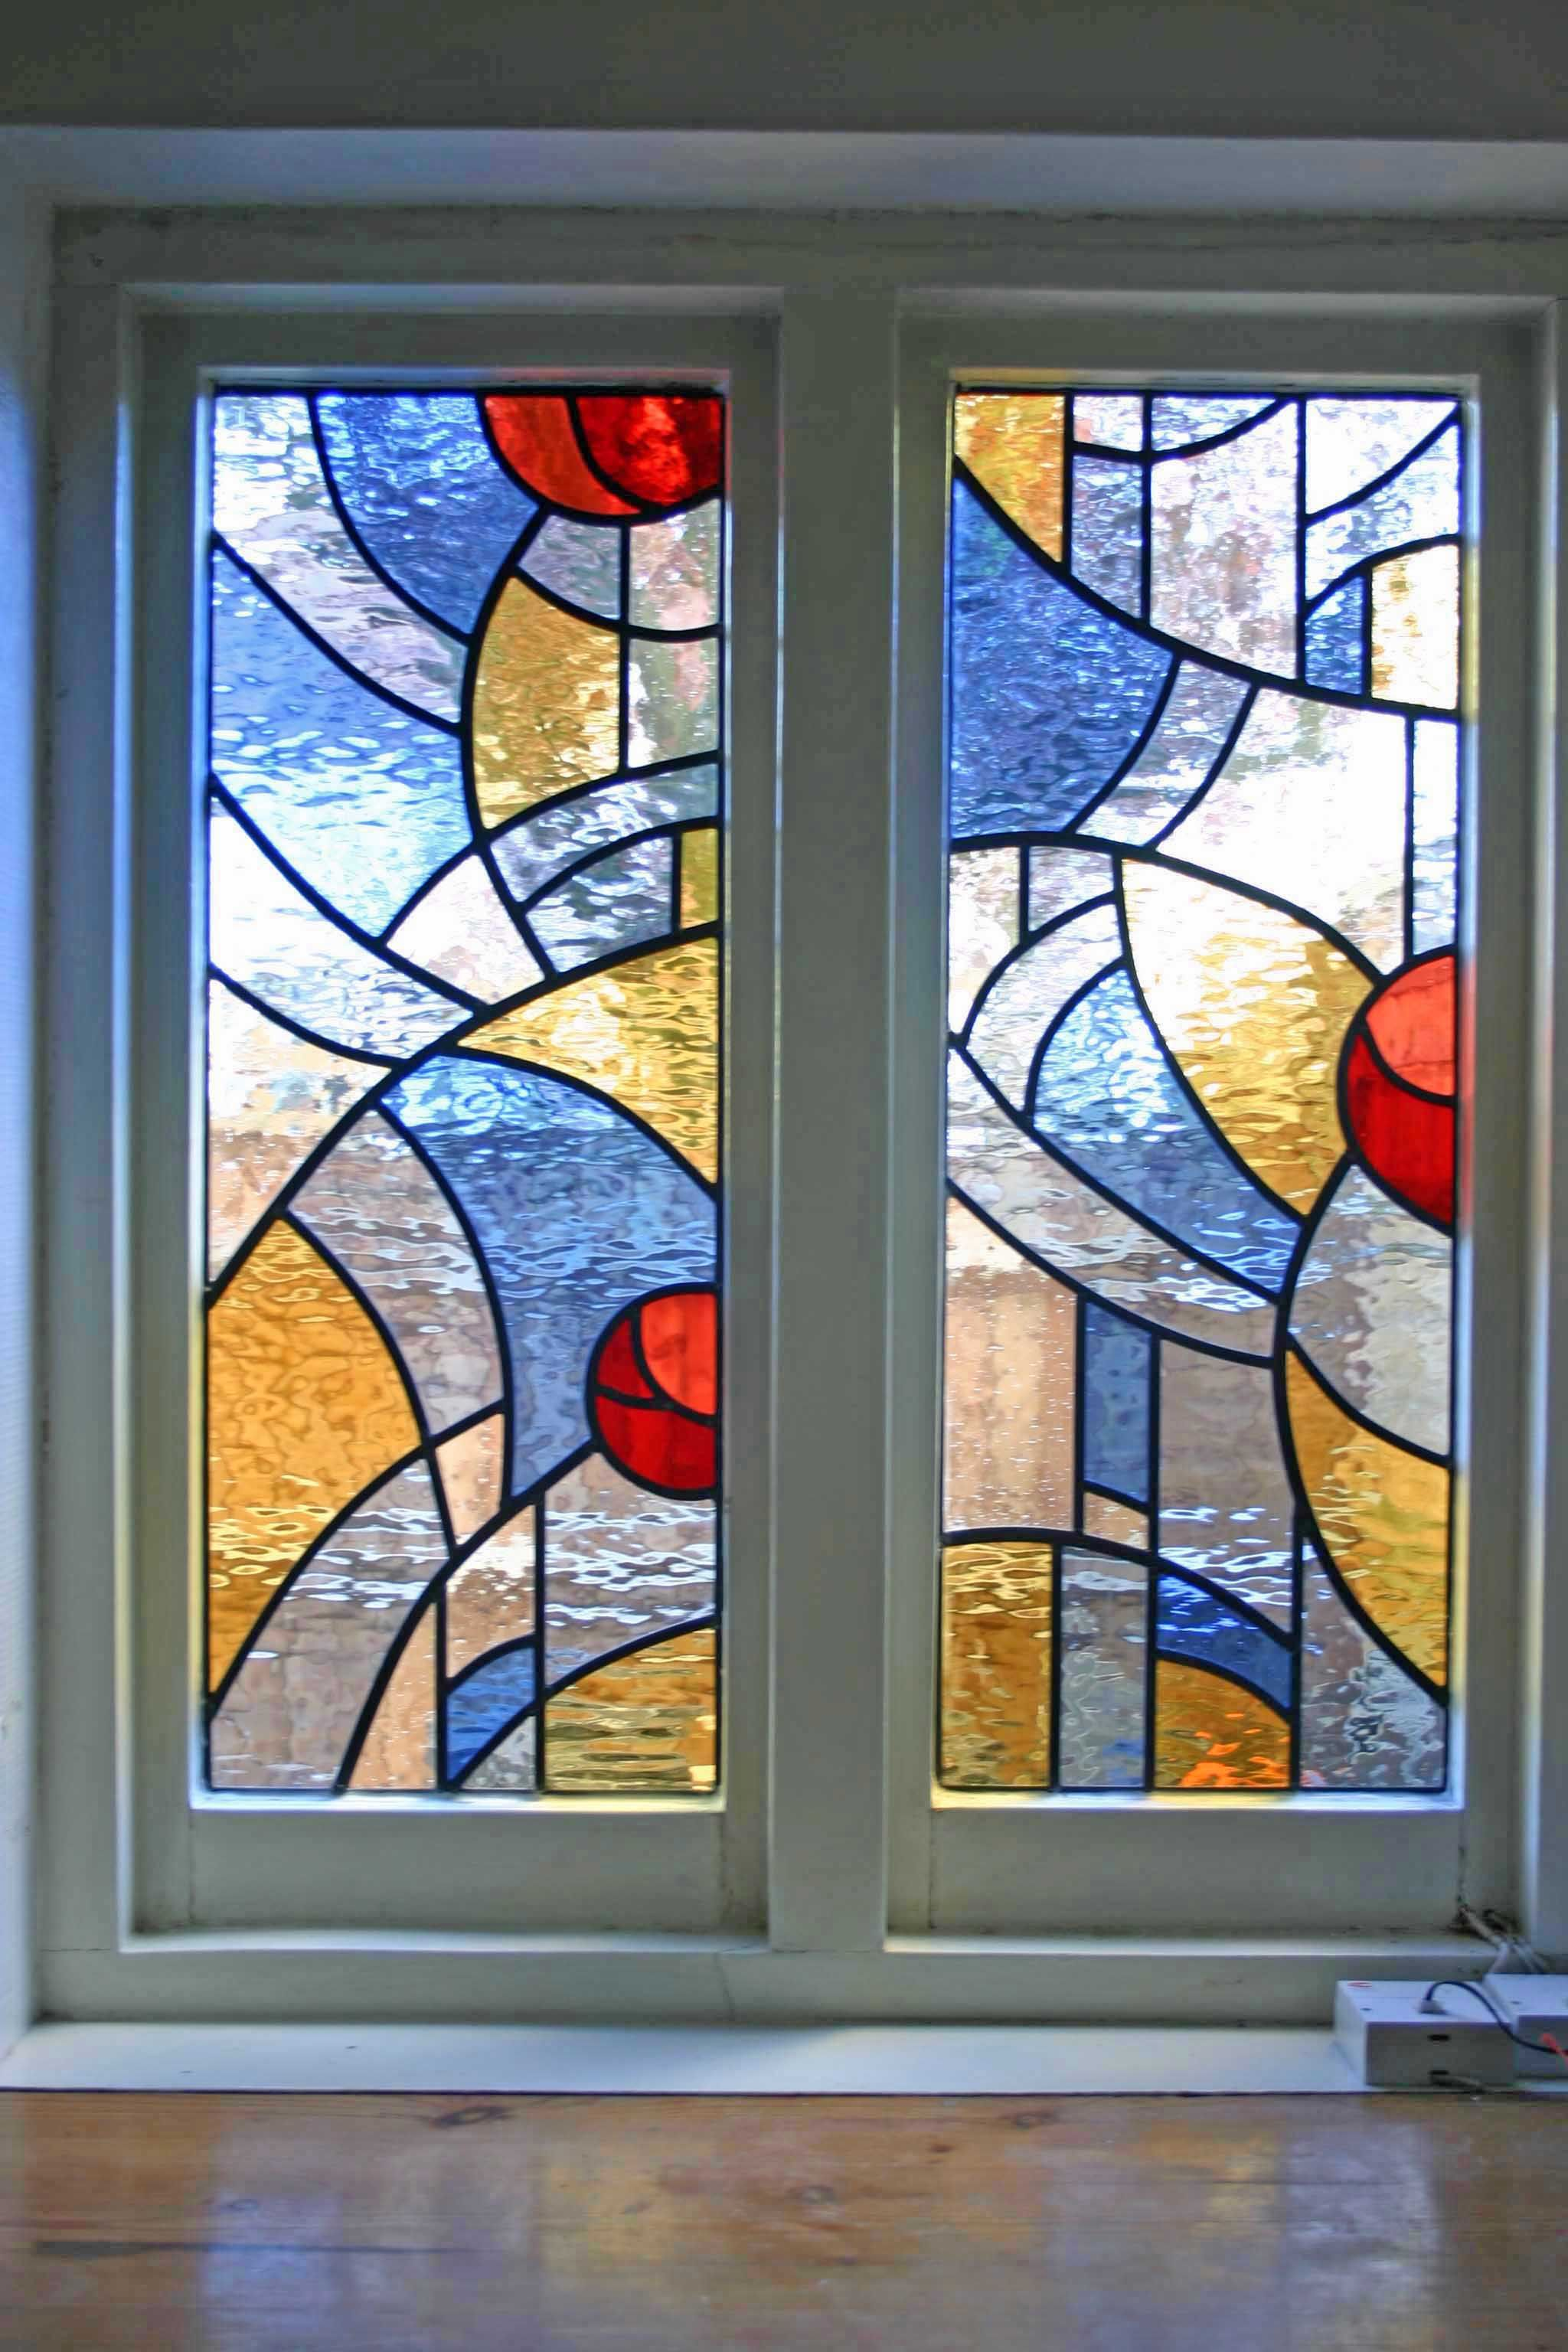 Carol arnold stained glass and design image of window